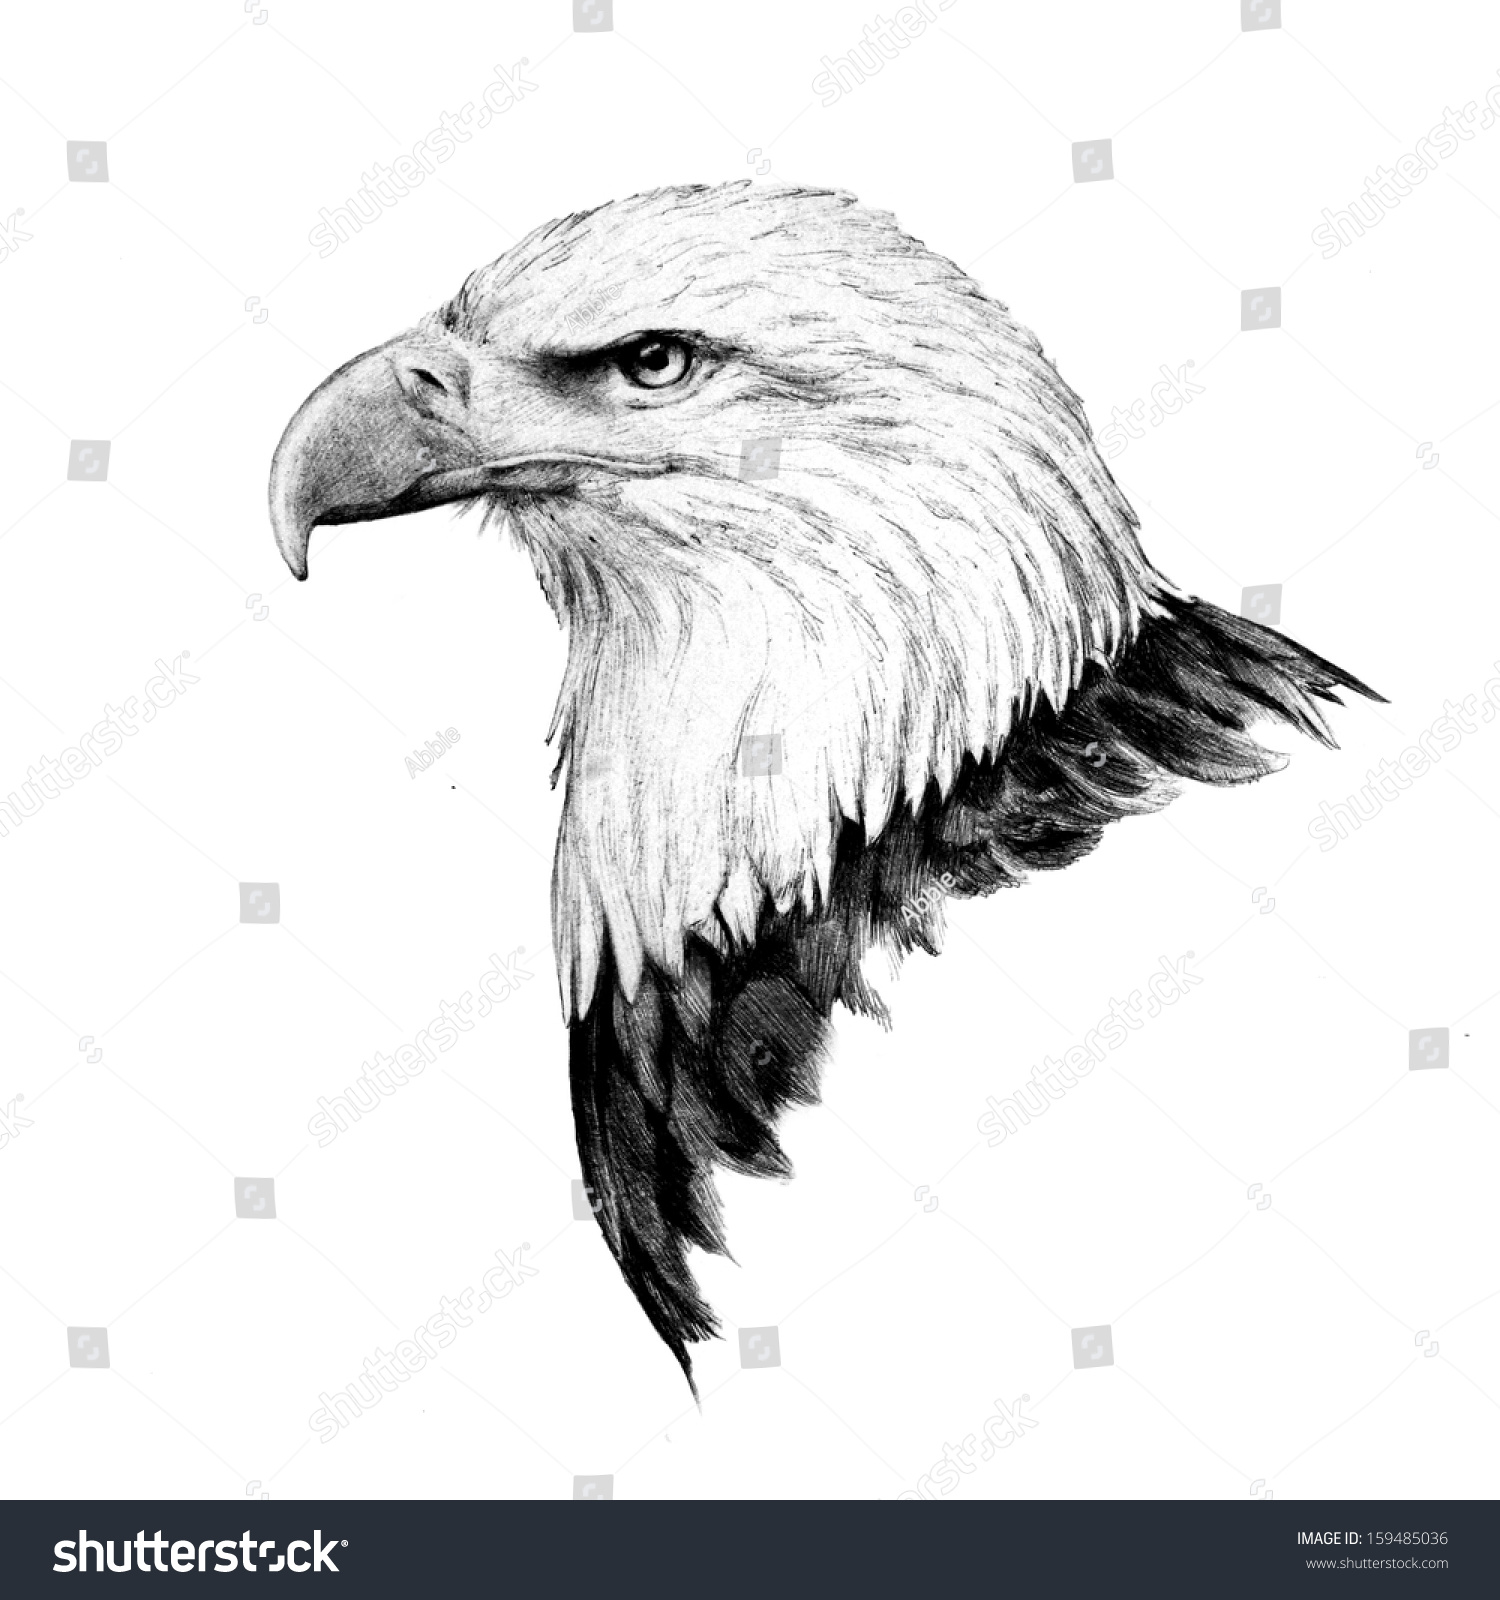 Bald Eagle Head Sketch In A Detailed Side View Drawing Of The United States Americas